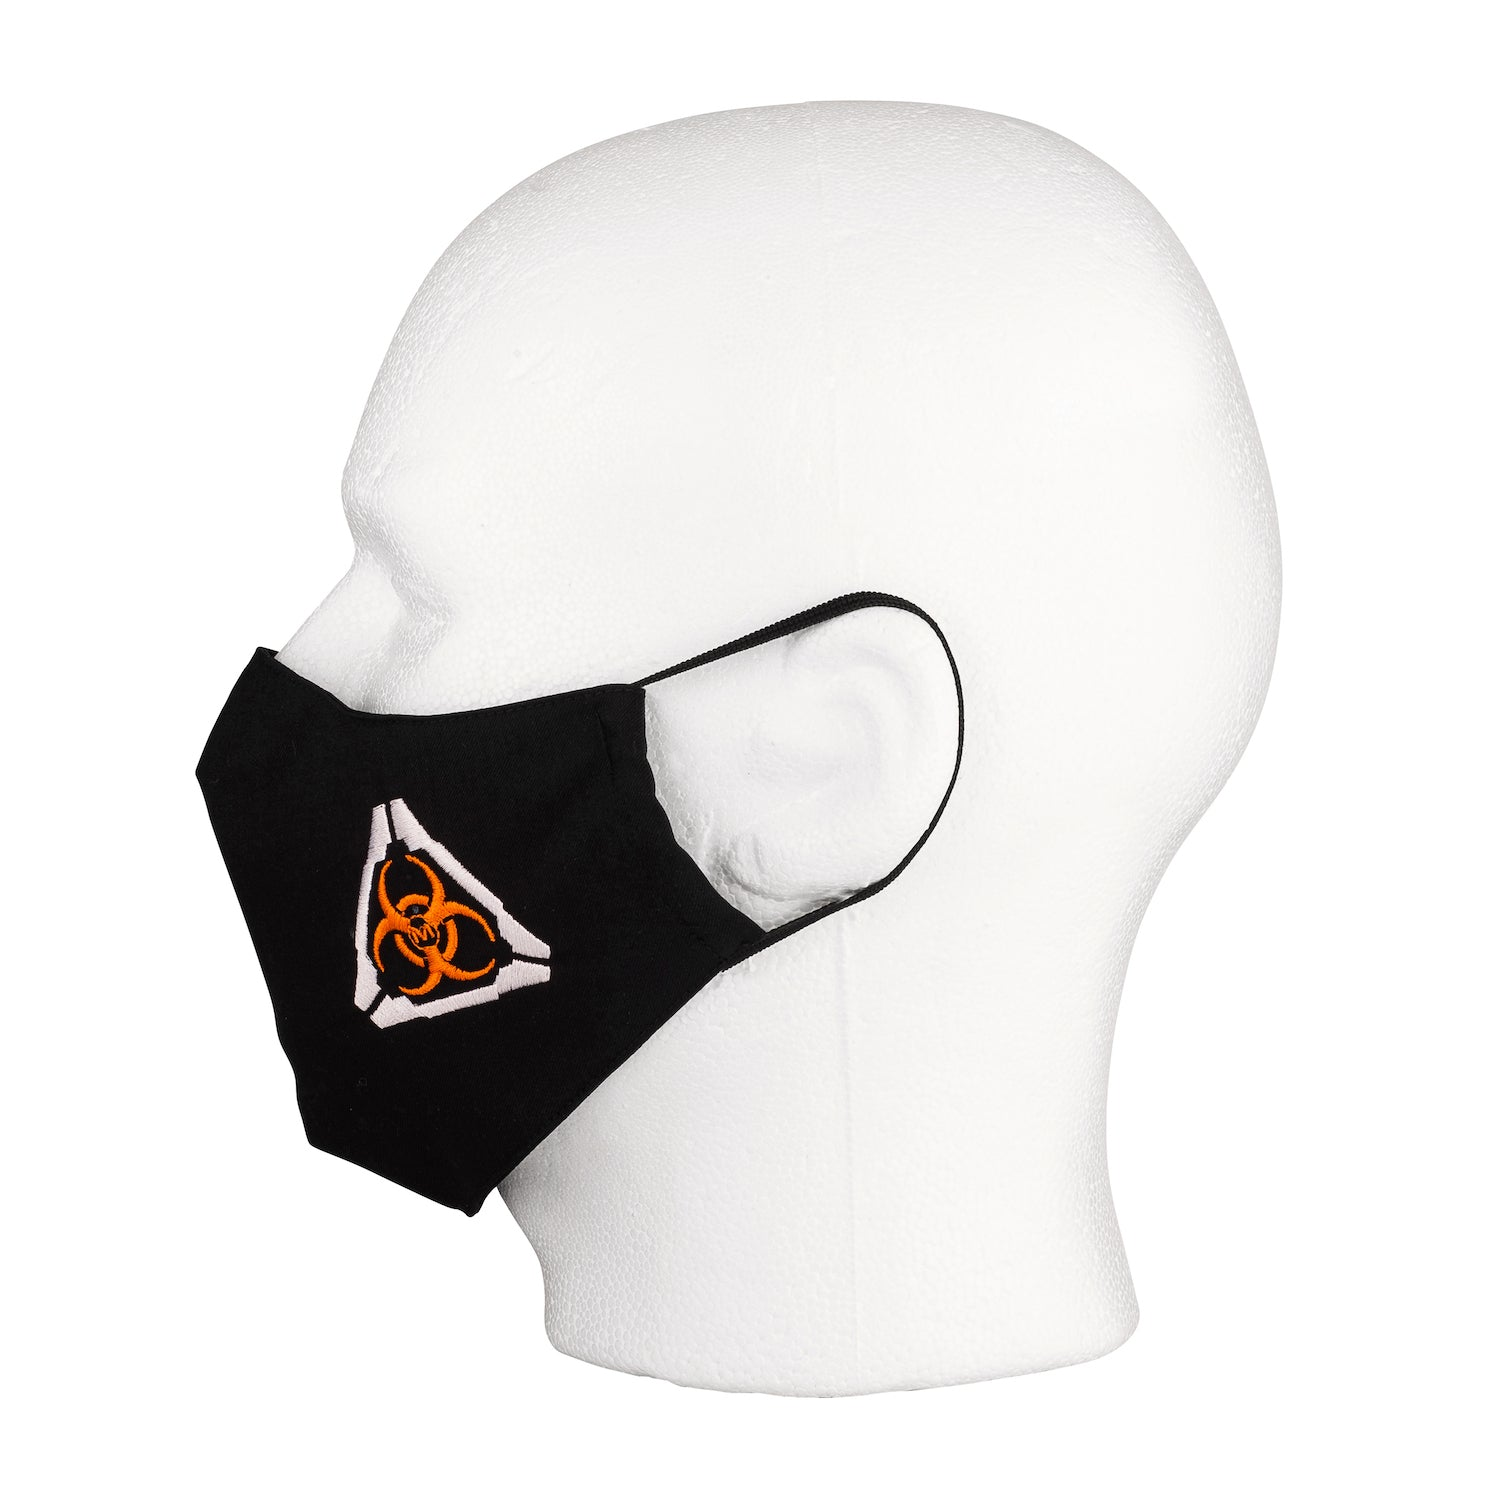 Side view of the MIRA Safety Mask with biohazard insignia on a mannequin head